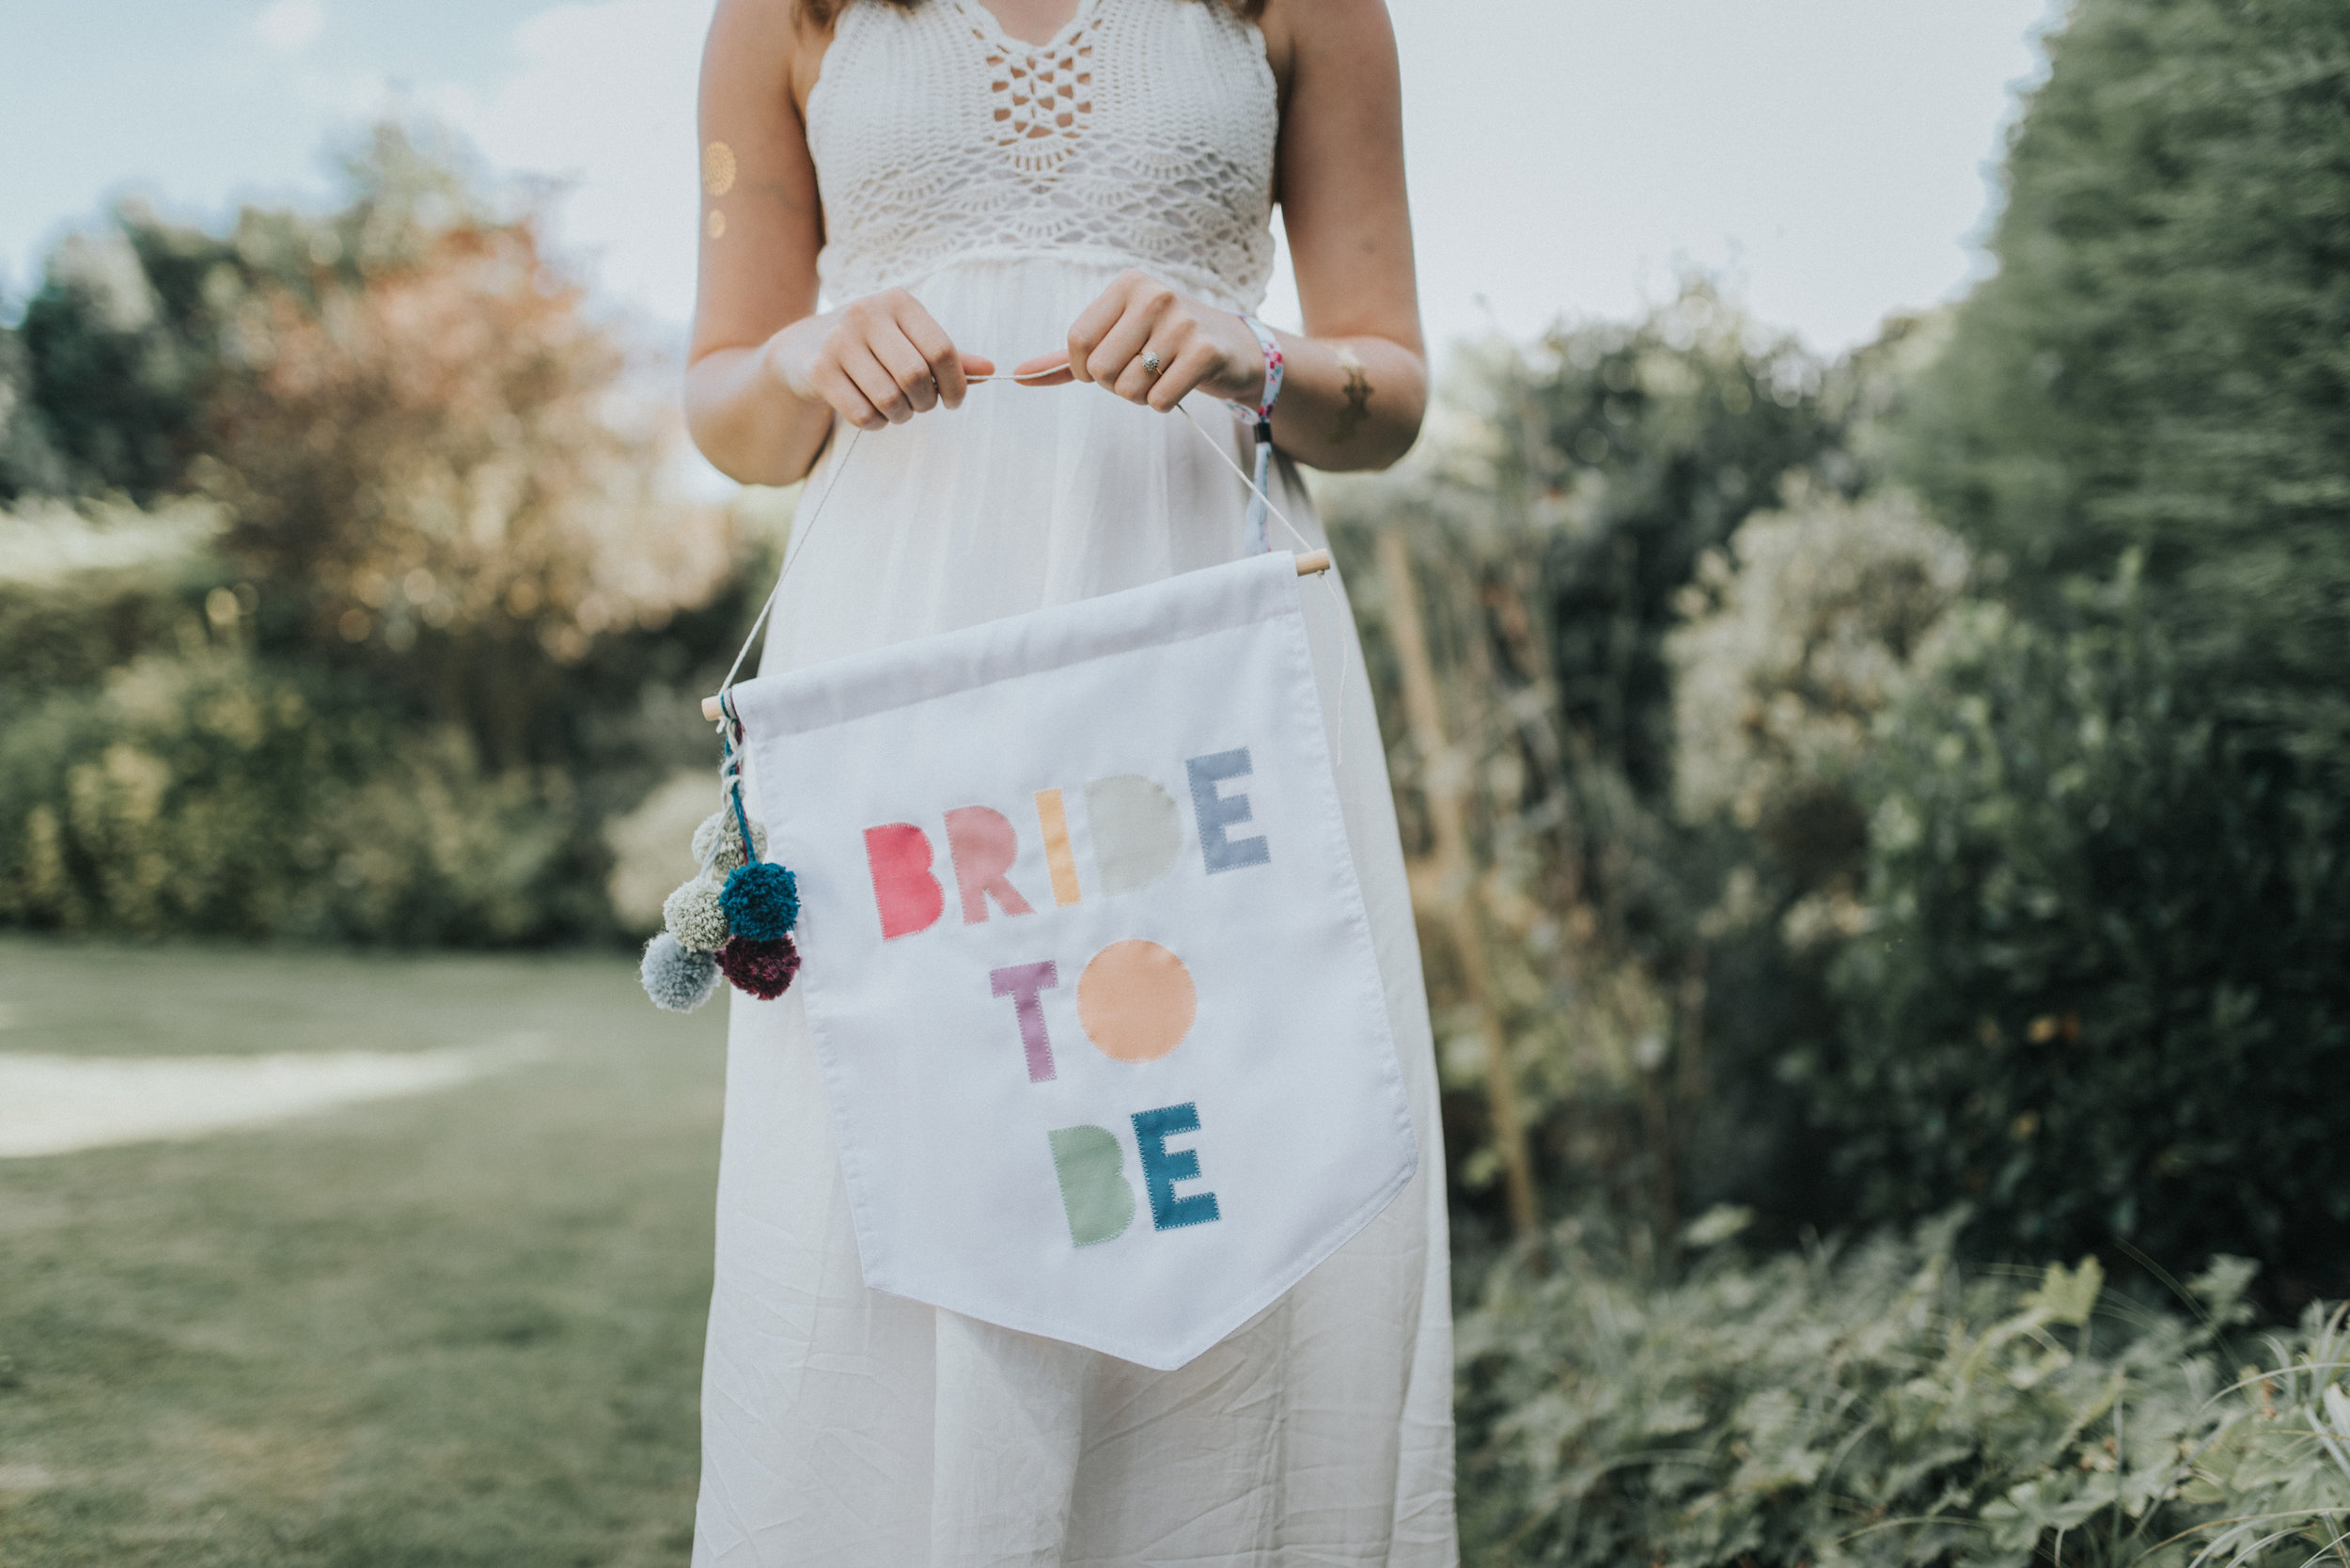 Bride to Be Banner - Bai & Elle Photography.jpg